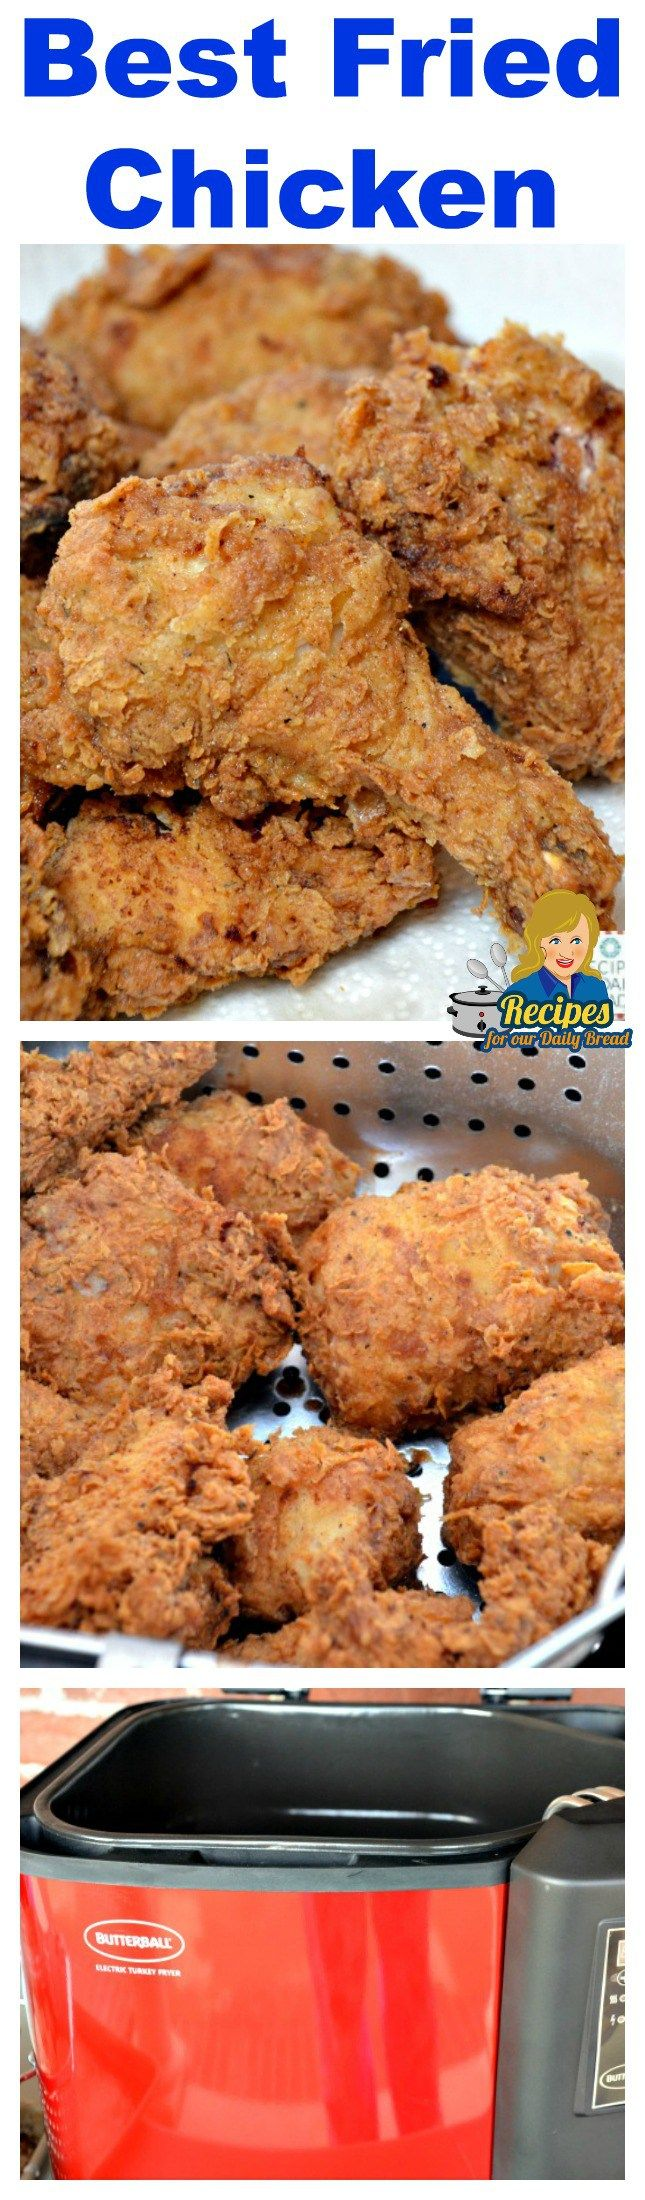 Best Fried Chicken - If you like Fried Chicken, you will love this crunchy, juicy, flavorful Best Ever Fried Chicken Recipe! #fried chicken #chicken #best fried chicken